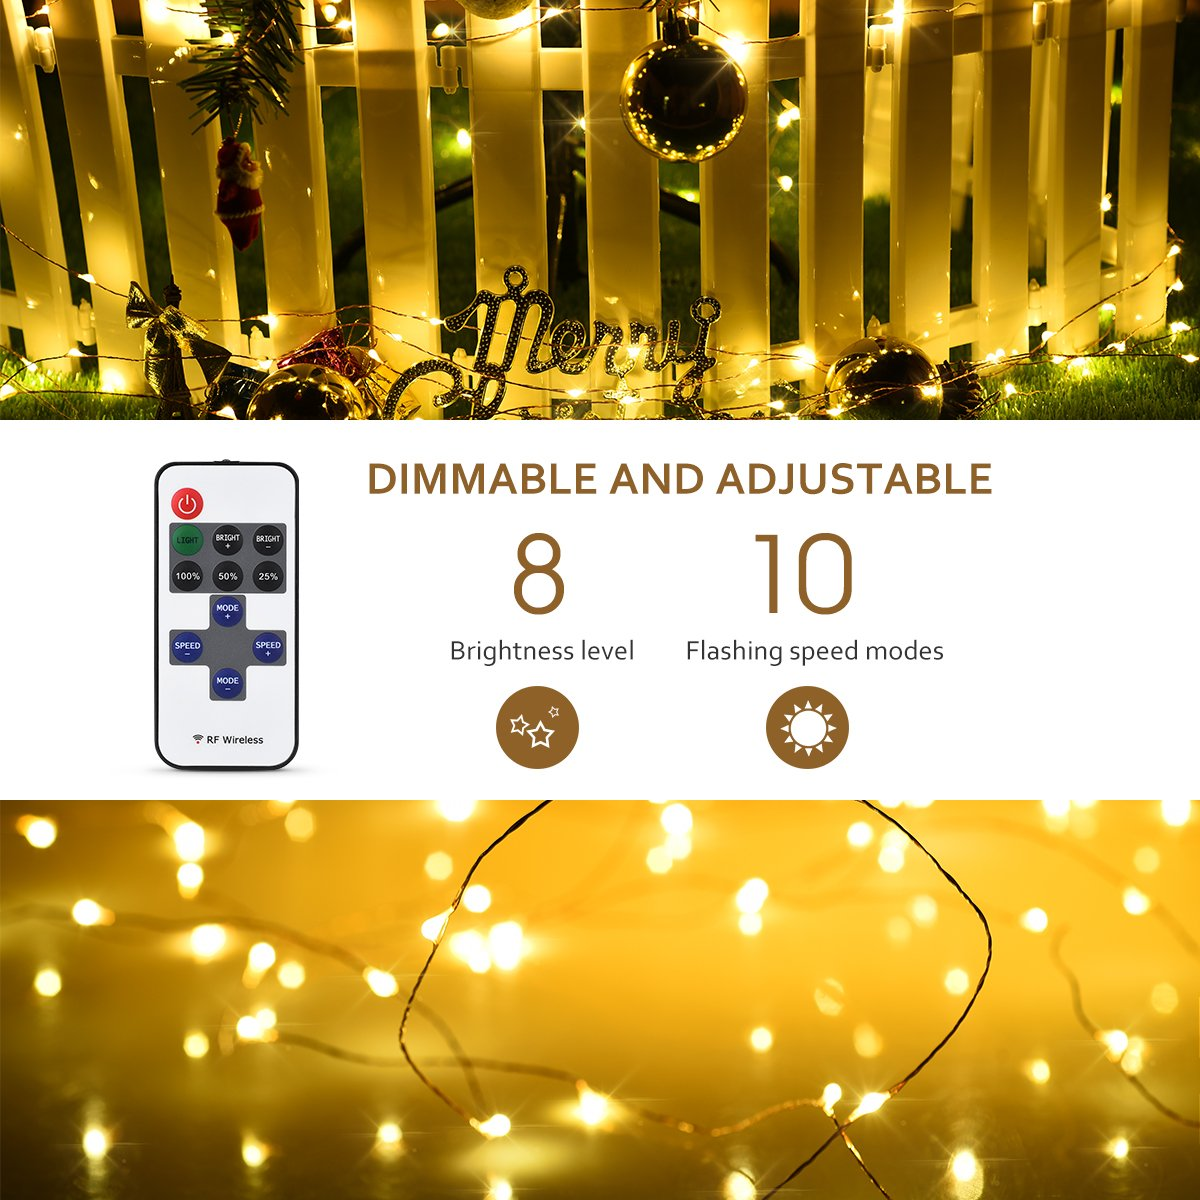 Amazon.com : Mpow LED String Lights with Remote Control, 66ft 200LED ...